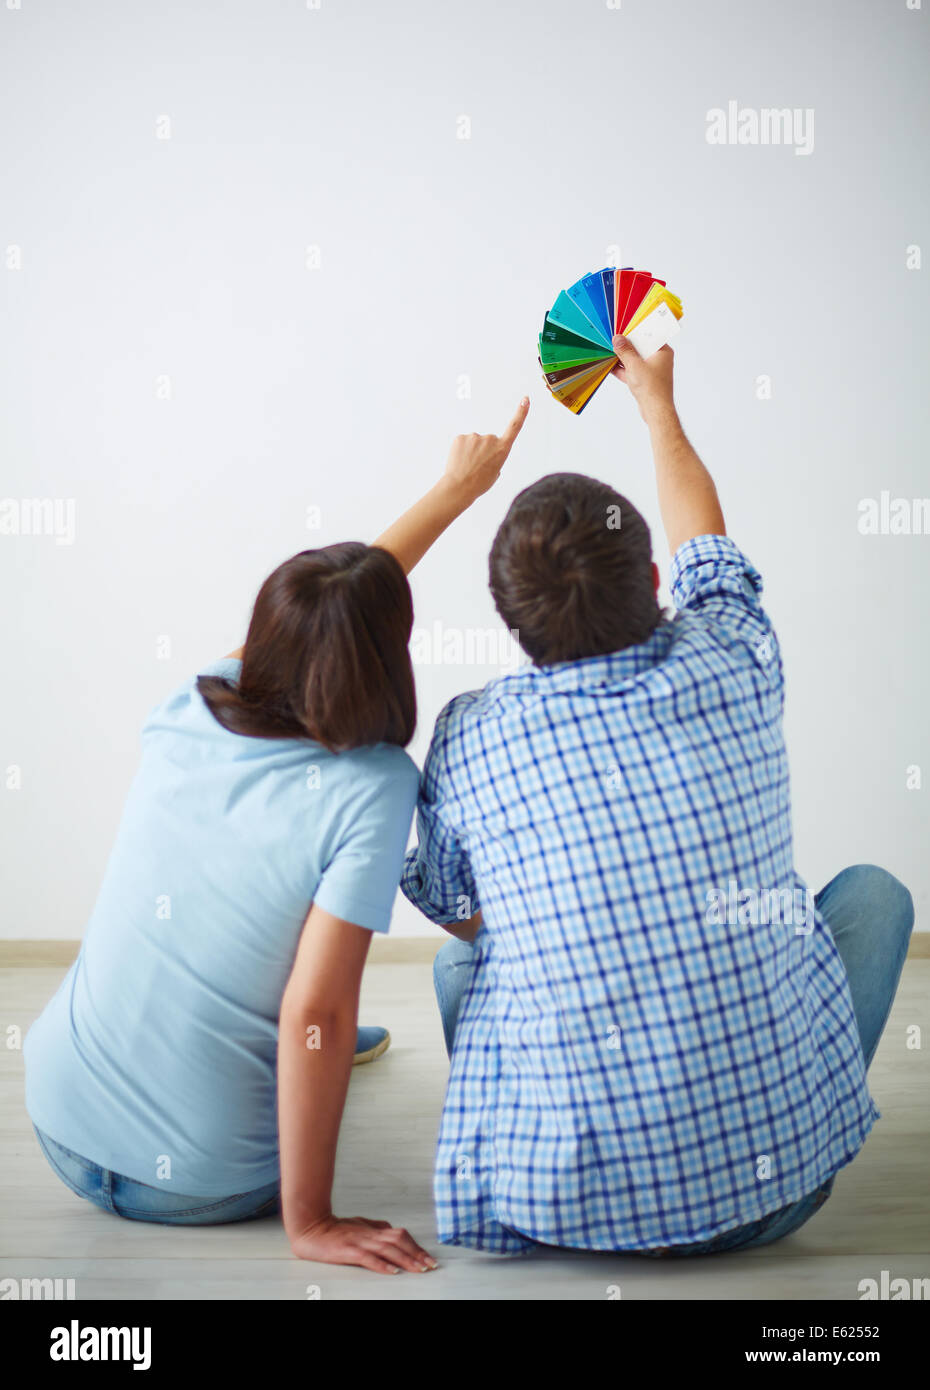 Backs of man and woman sitting on the floor of new house and choosing color of walls - Stock Image